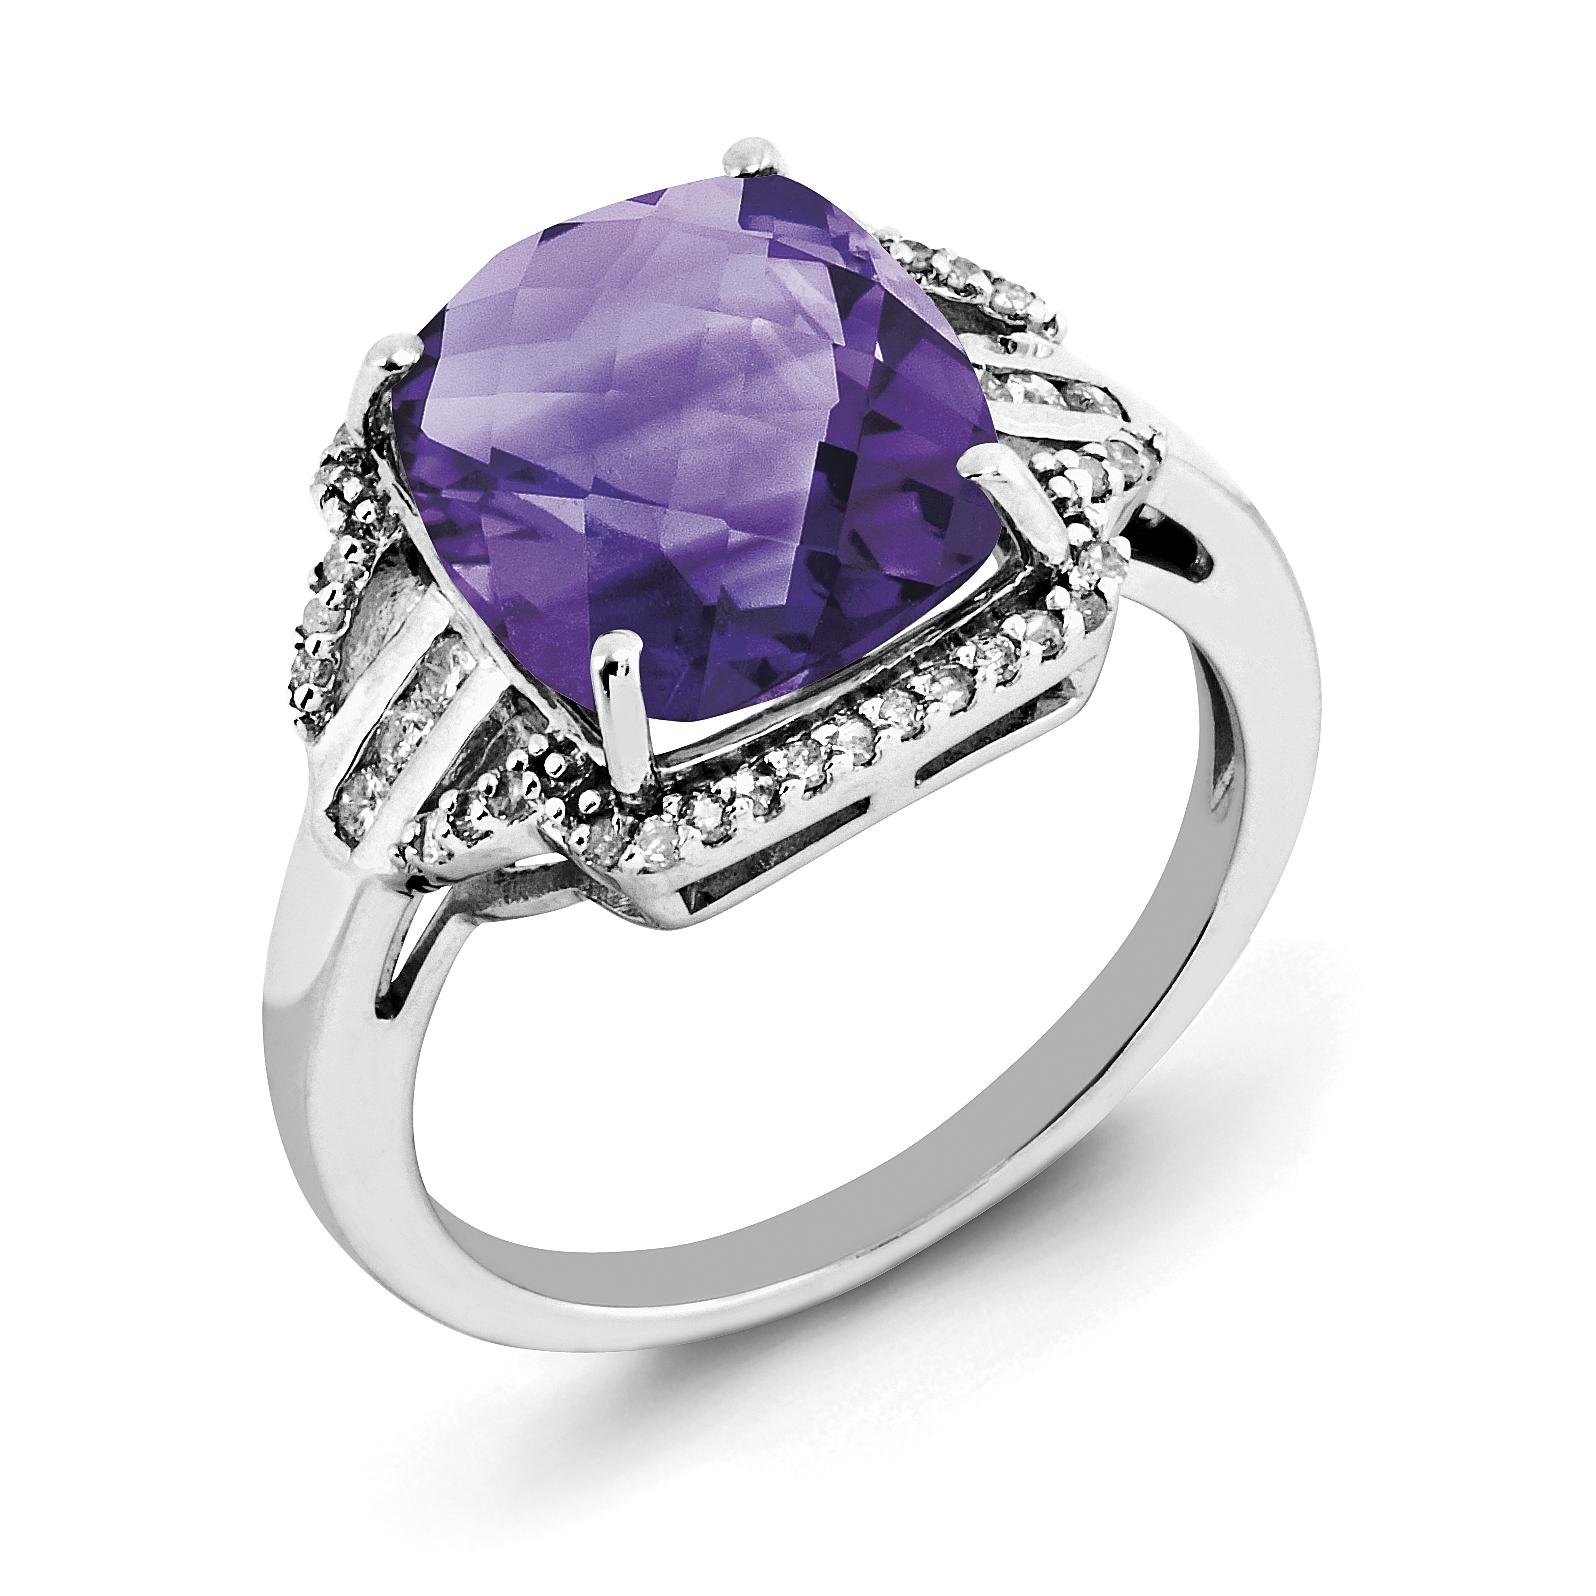 925 Sterling Silver Rhodium-plated Checker-Cut Amethyst and Diamond Ring - image 2 of 2